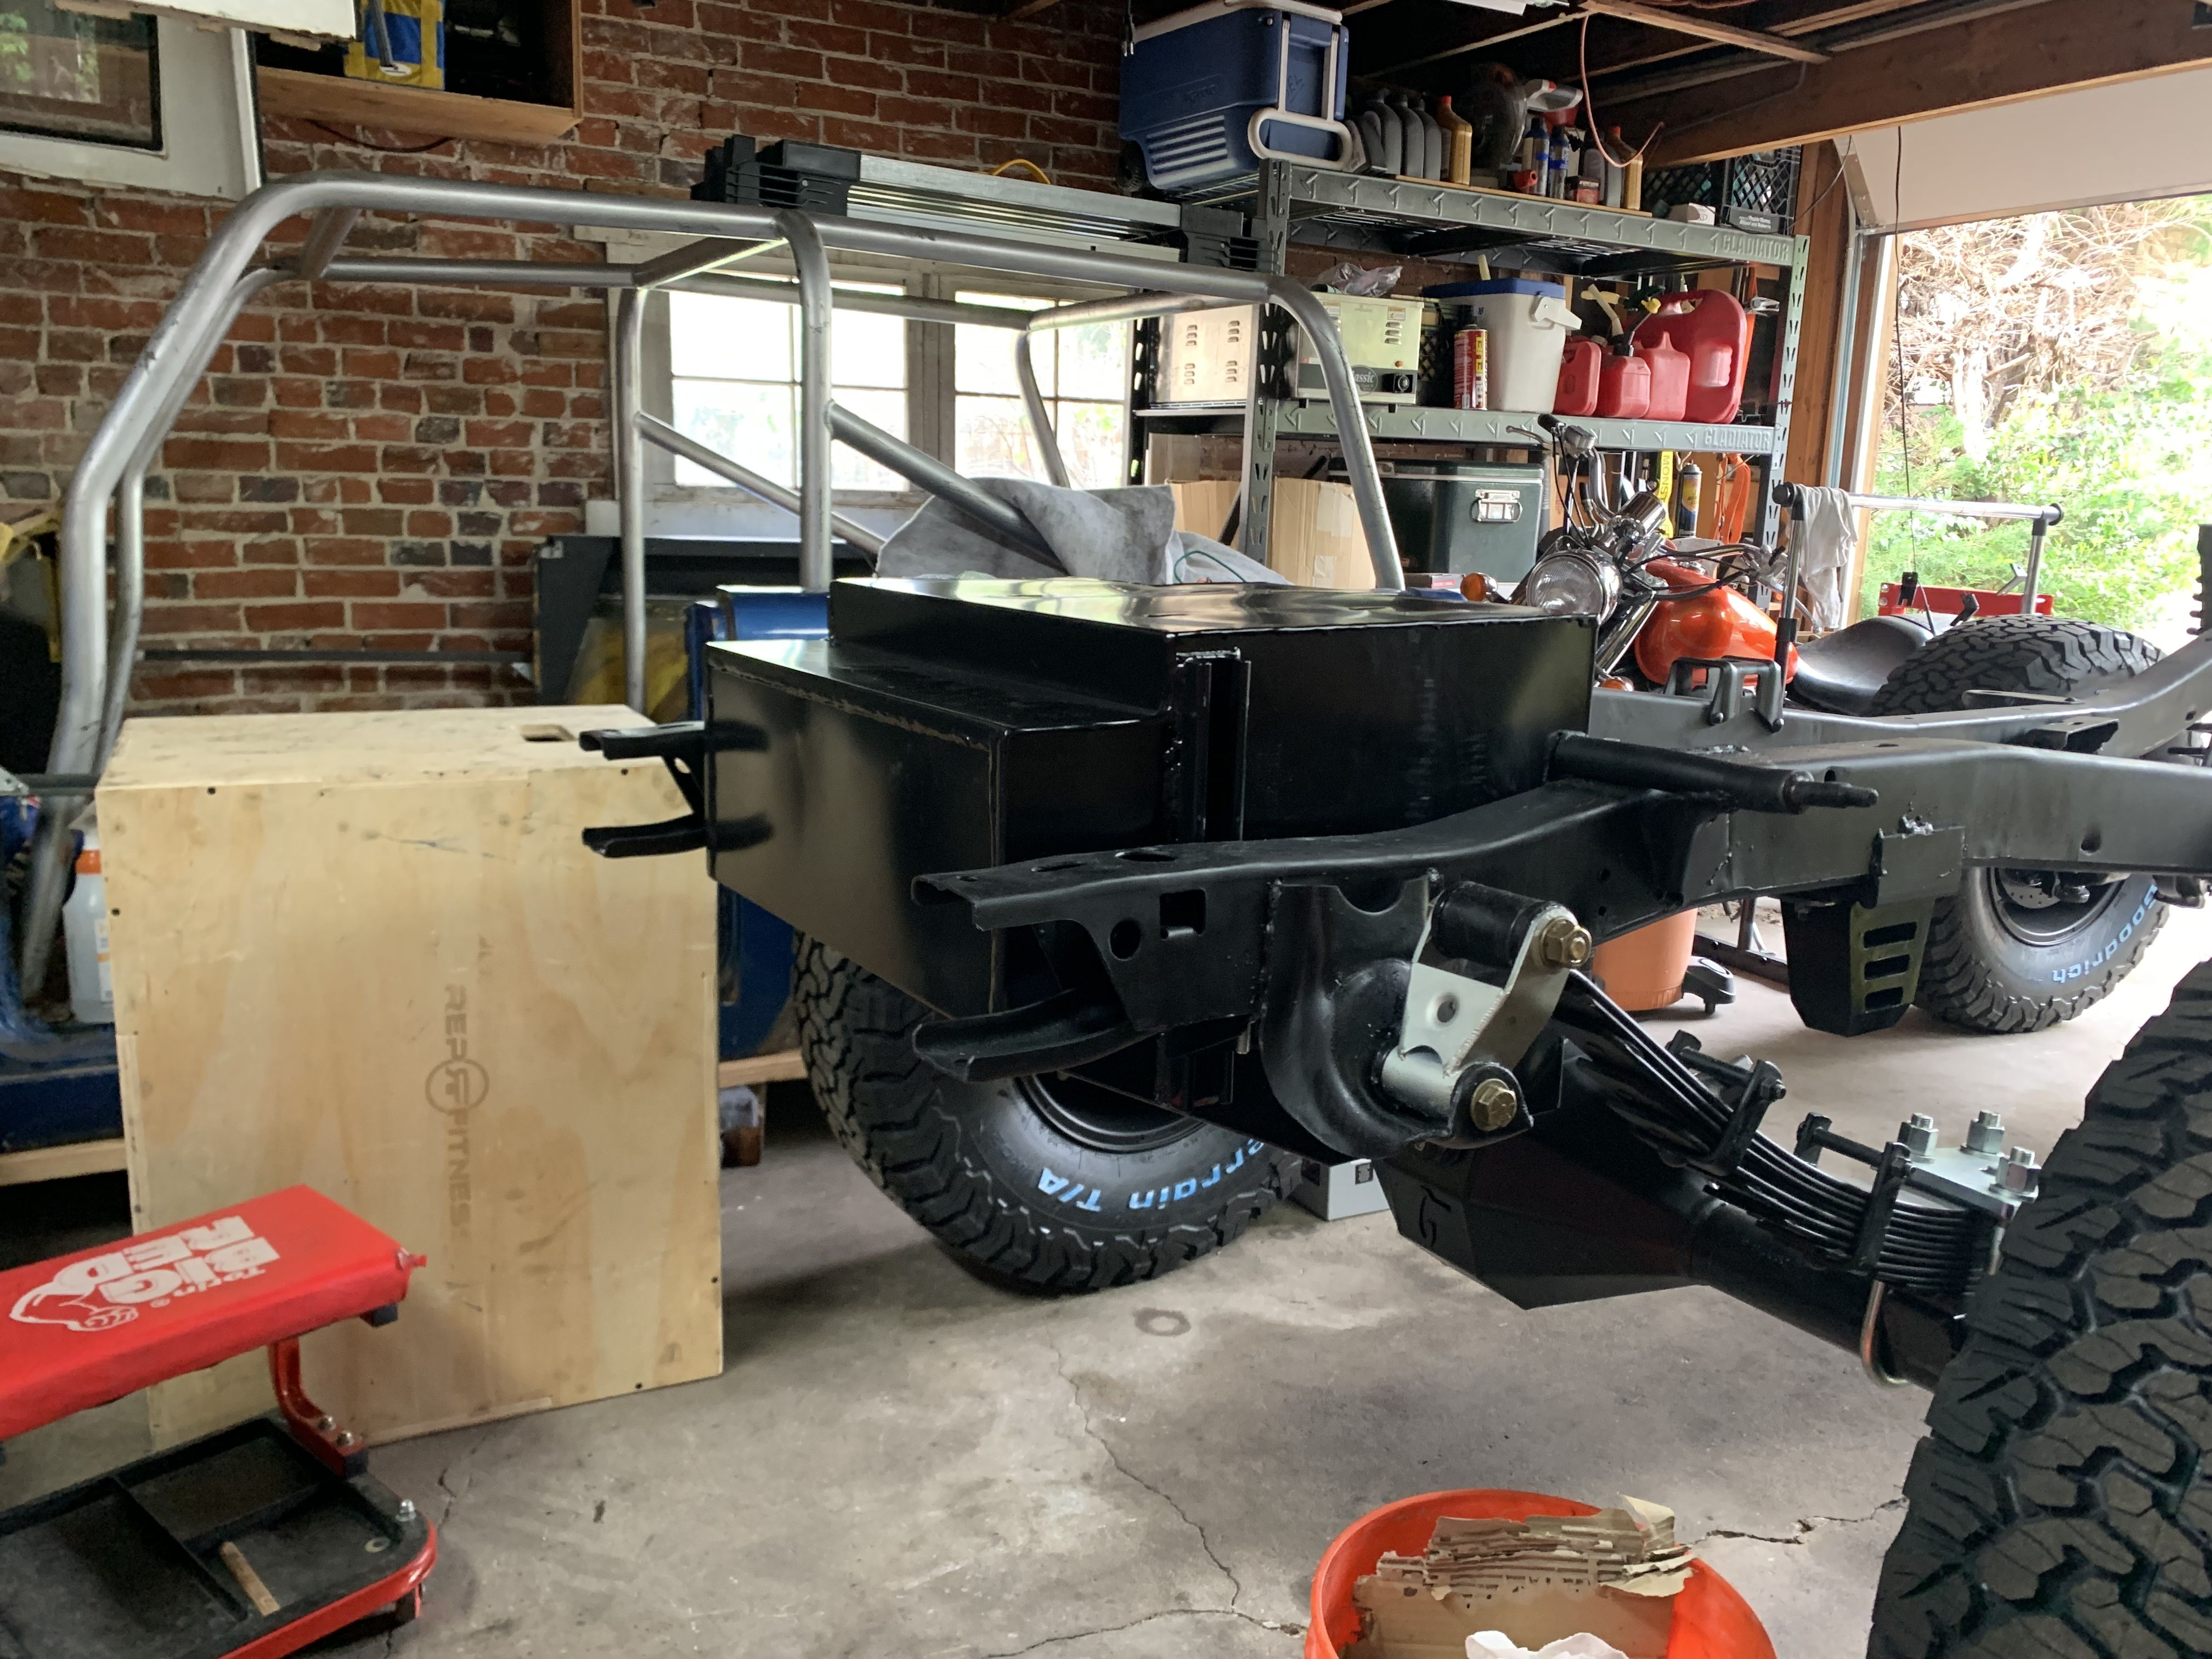 23 Gallon Tank Bc Broncos Early Bronco Bronco Restoration